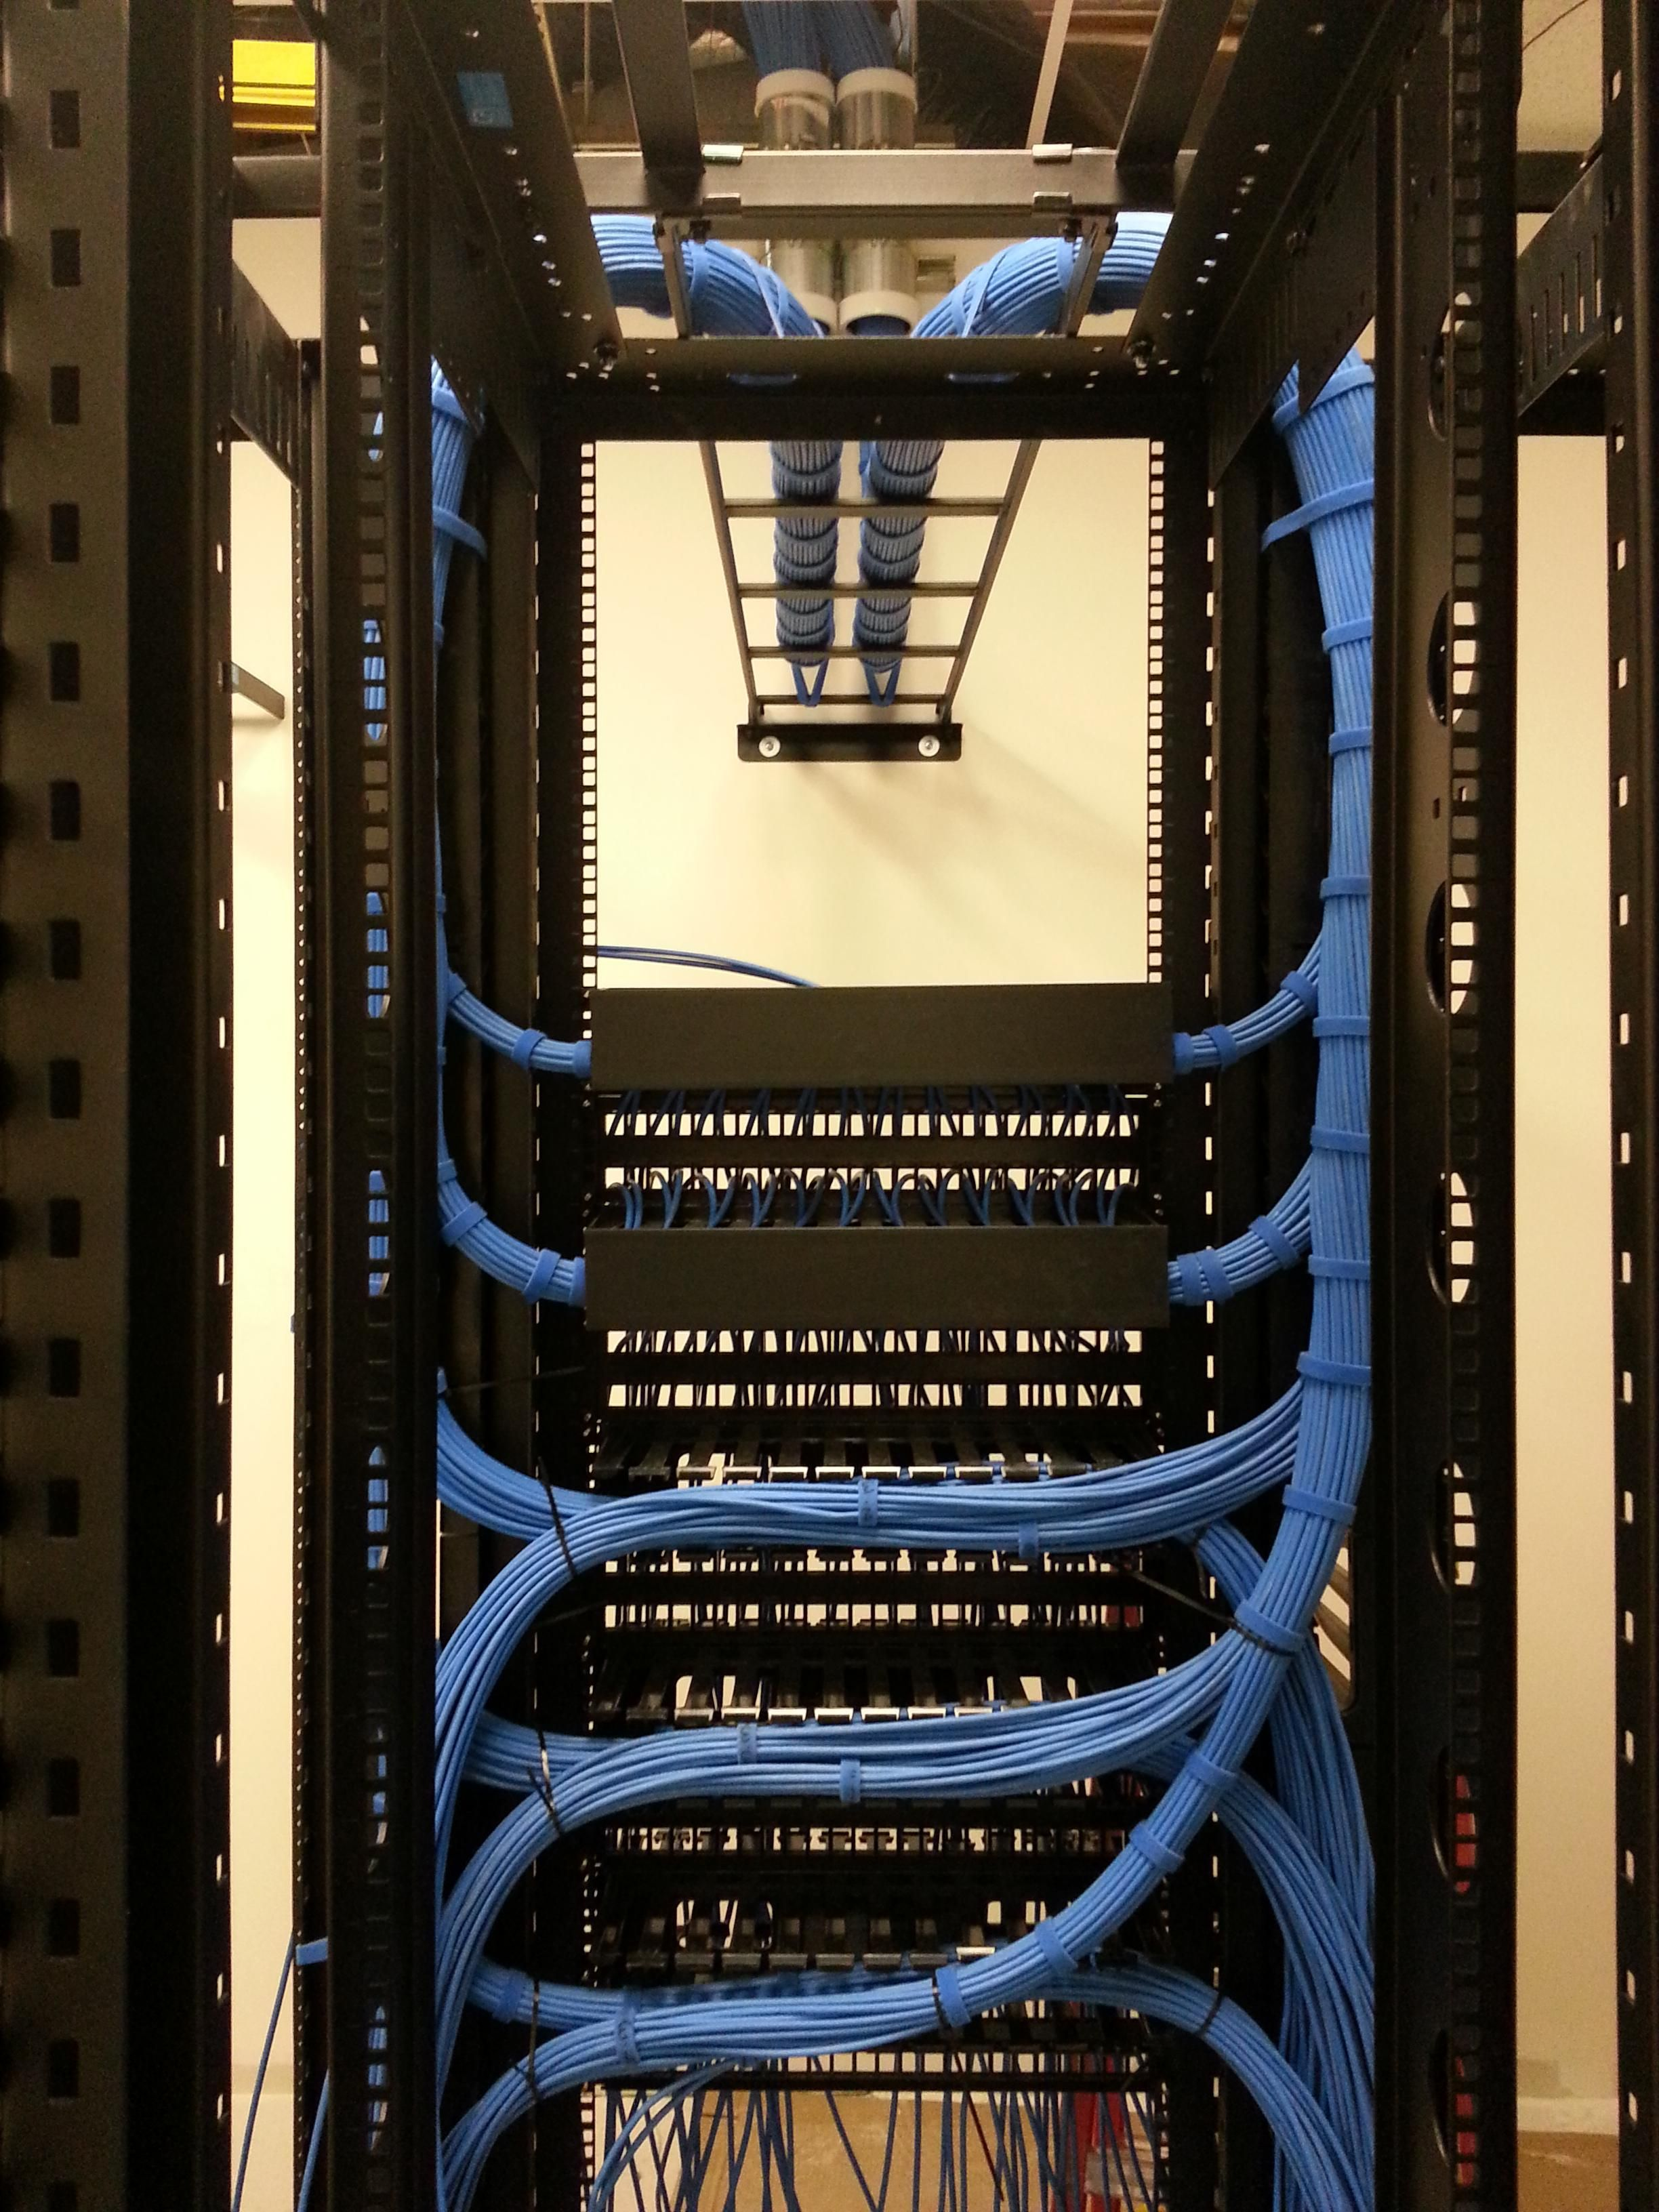 itt tech structured cabling project charter If you are in need of a good company to help you out williams network cabling is a good choice see more see less robert is the best at what he doeshe is honest and trustworthy.